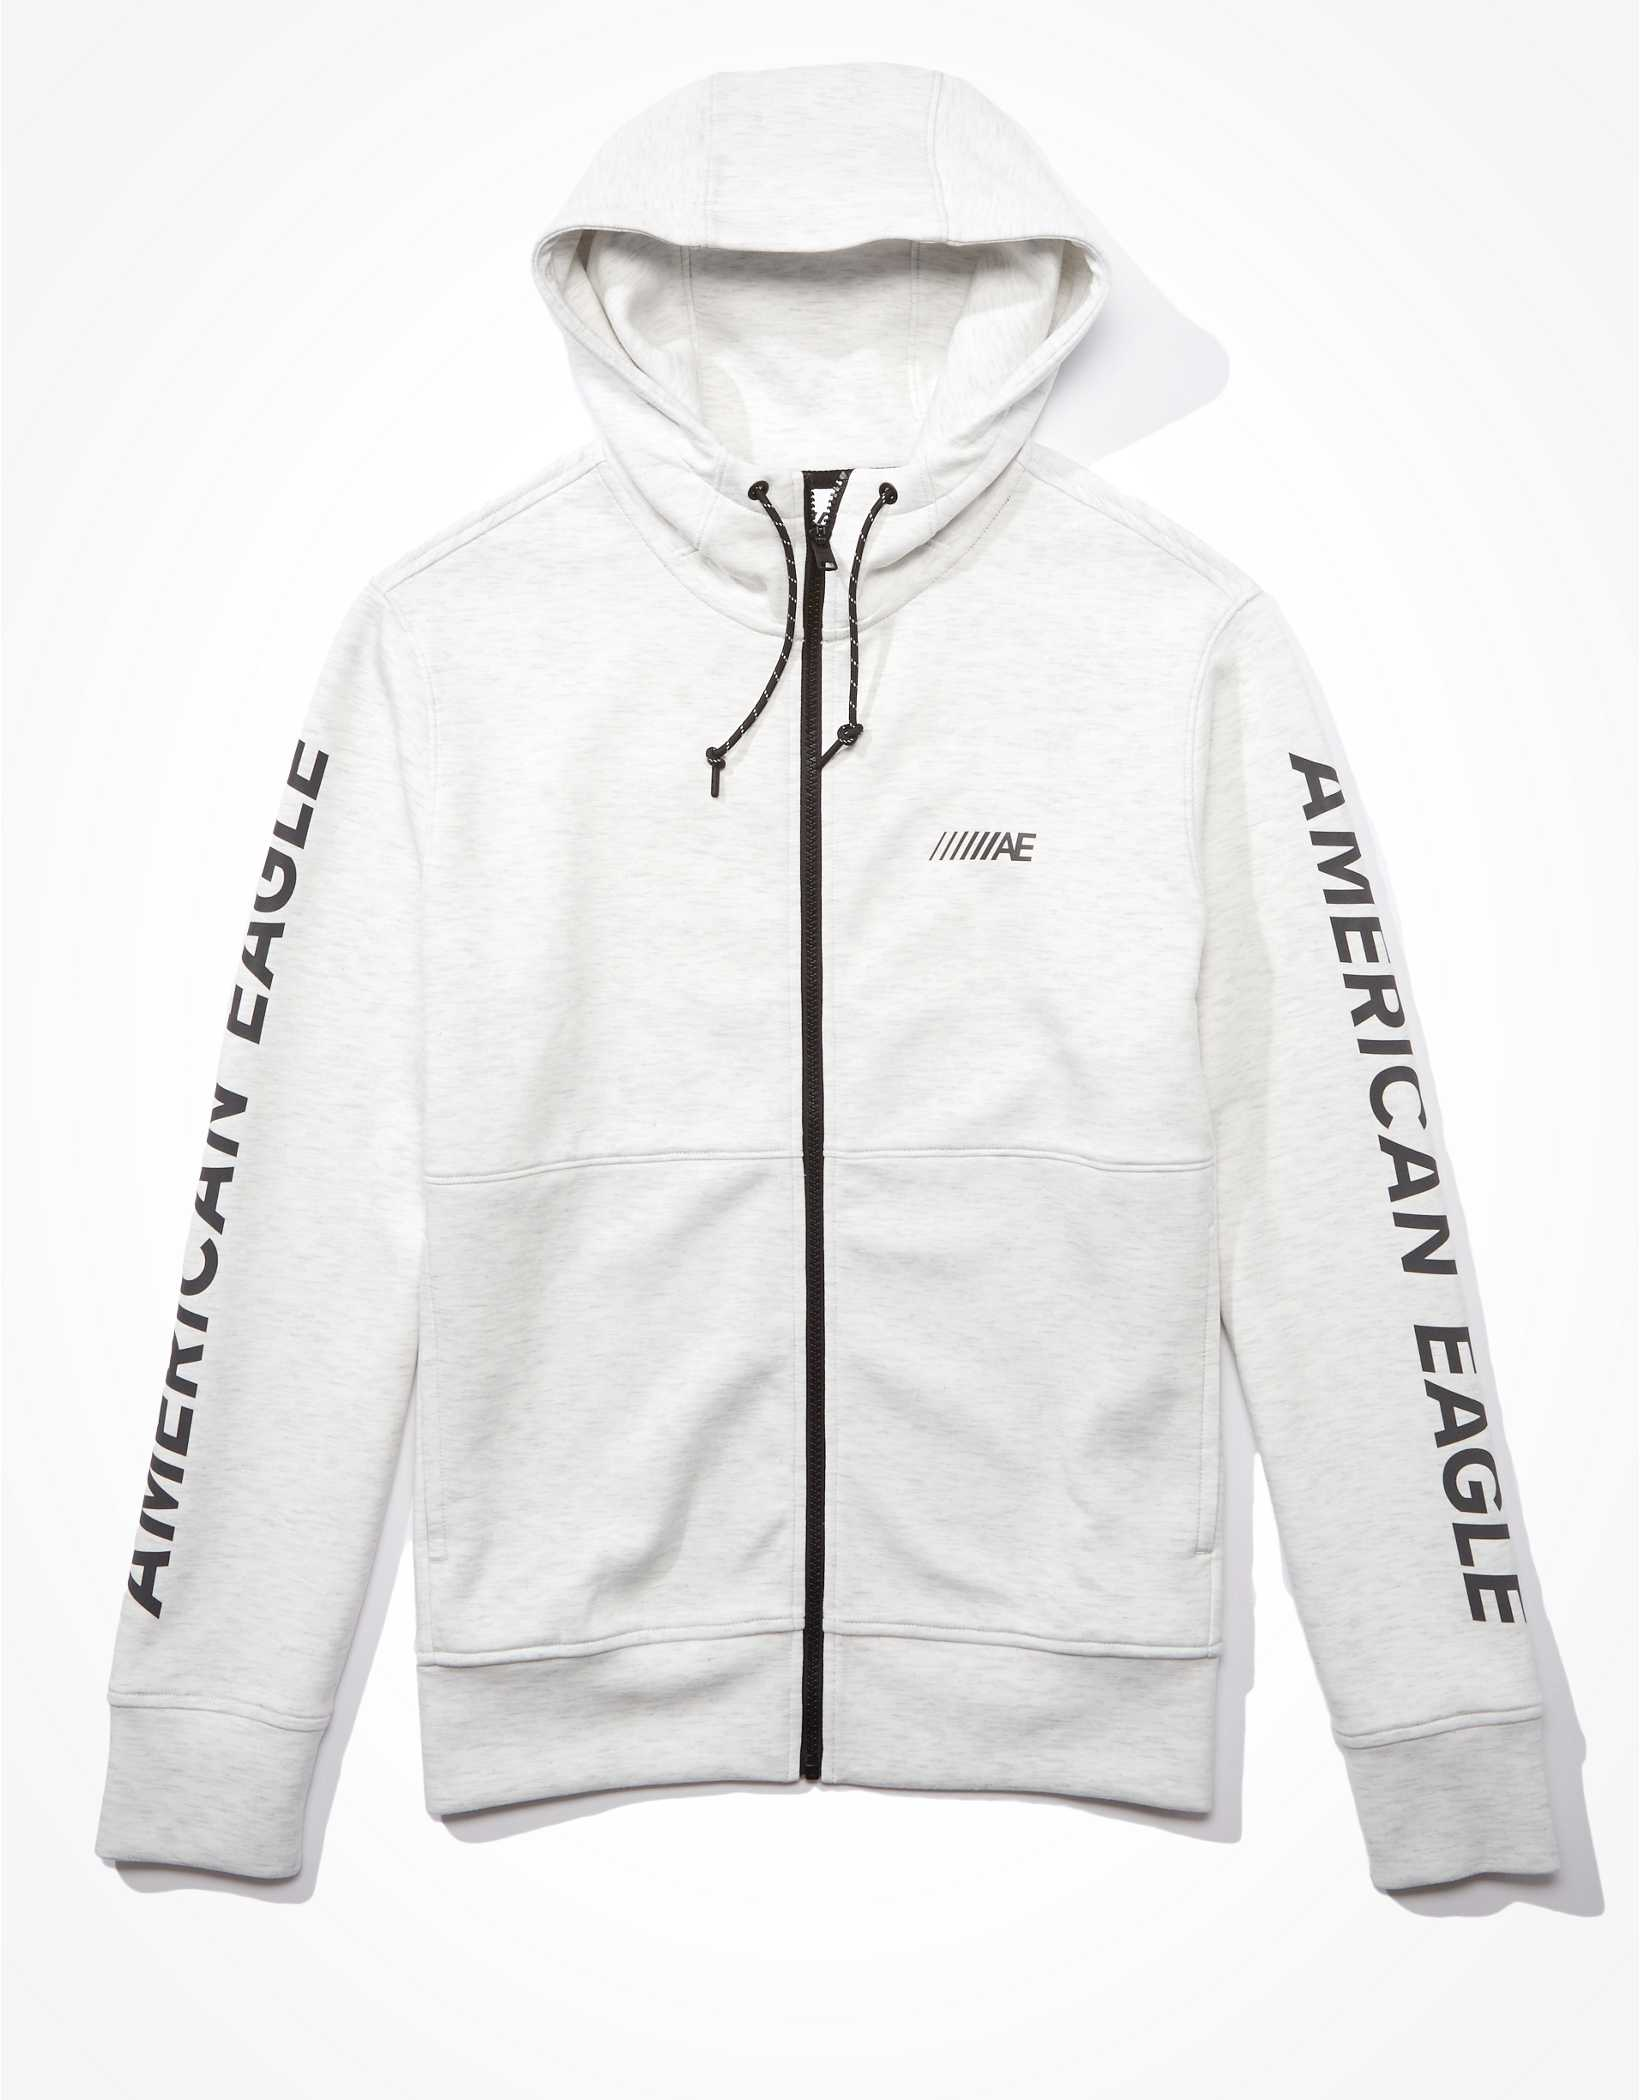 .98 AE Active 24/7 Zip-Up Hoodie + Free shipping over  at American Eagle!